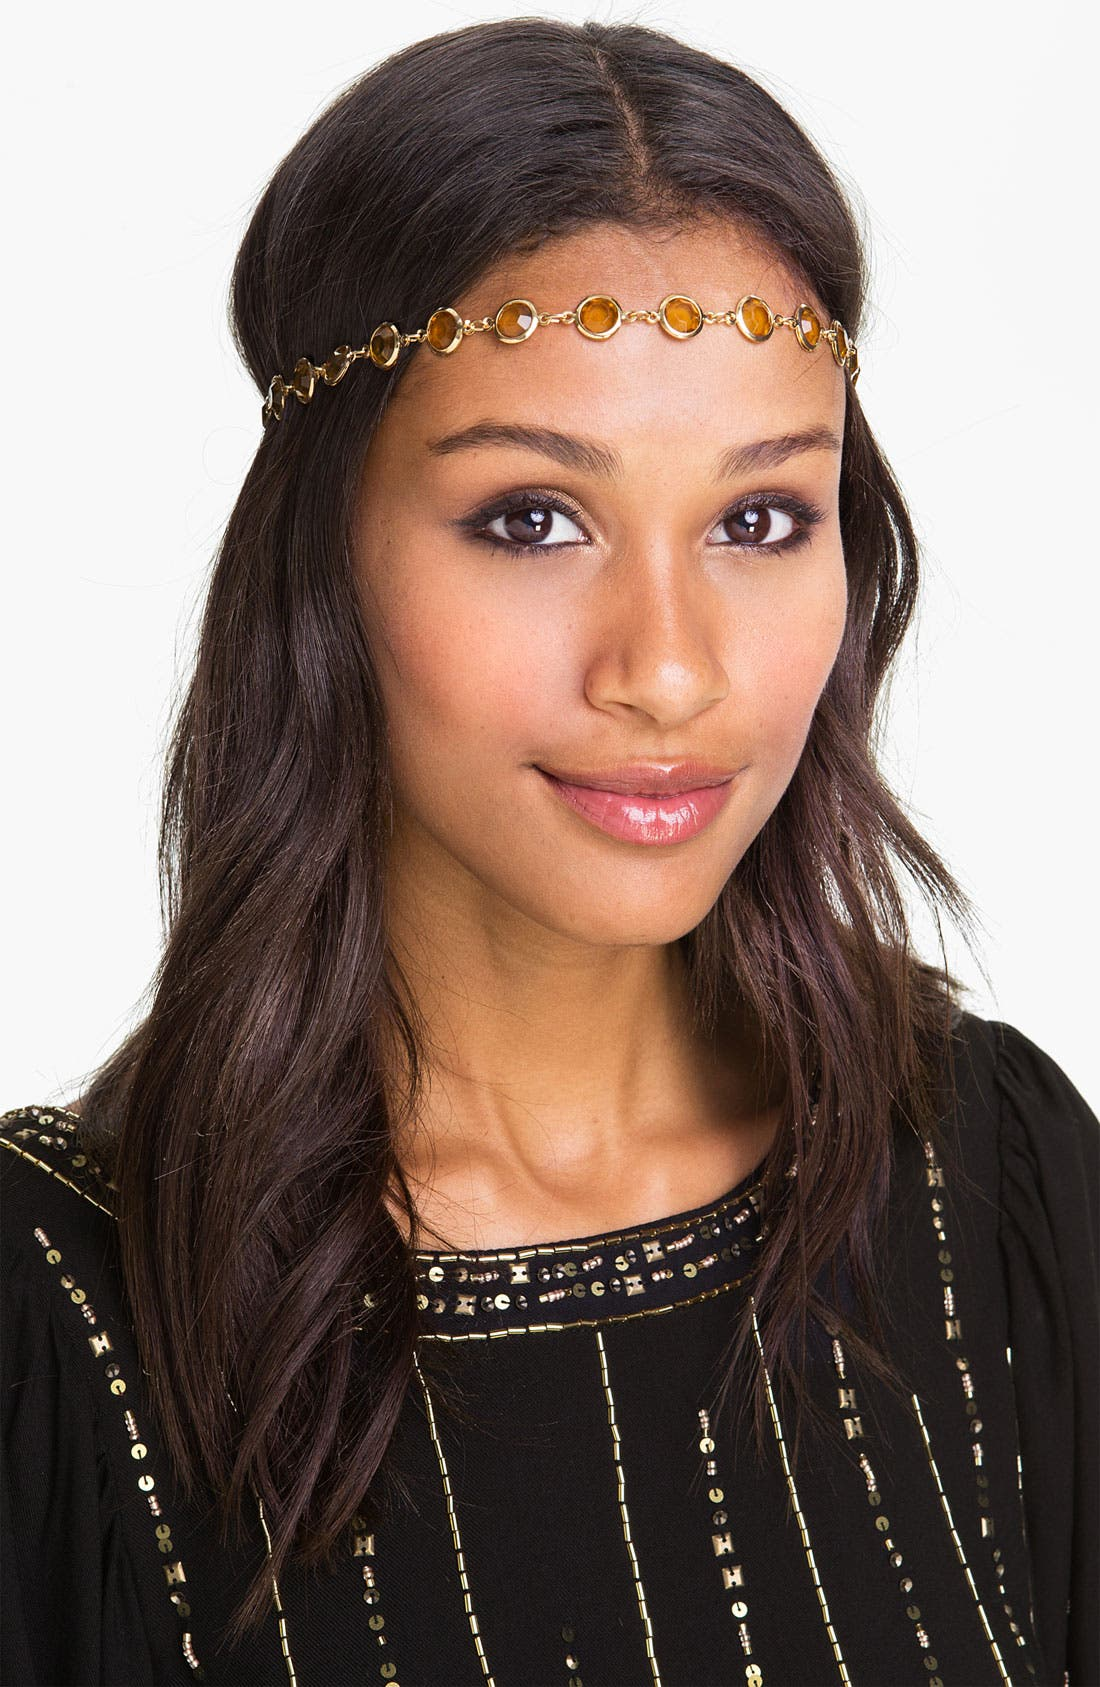 Alternate Image 1 Selected - Tasha 'Crystal Coins' Head Wrap